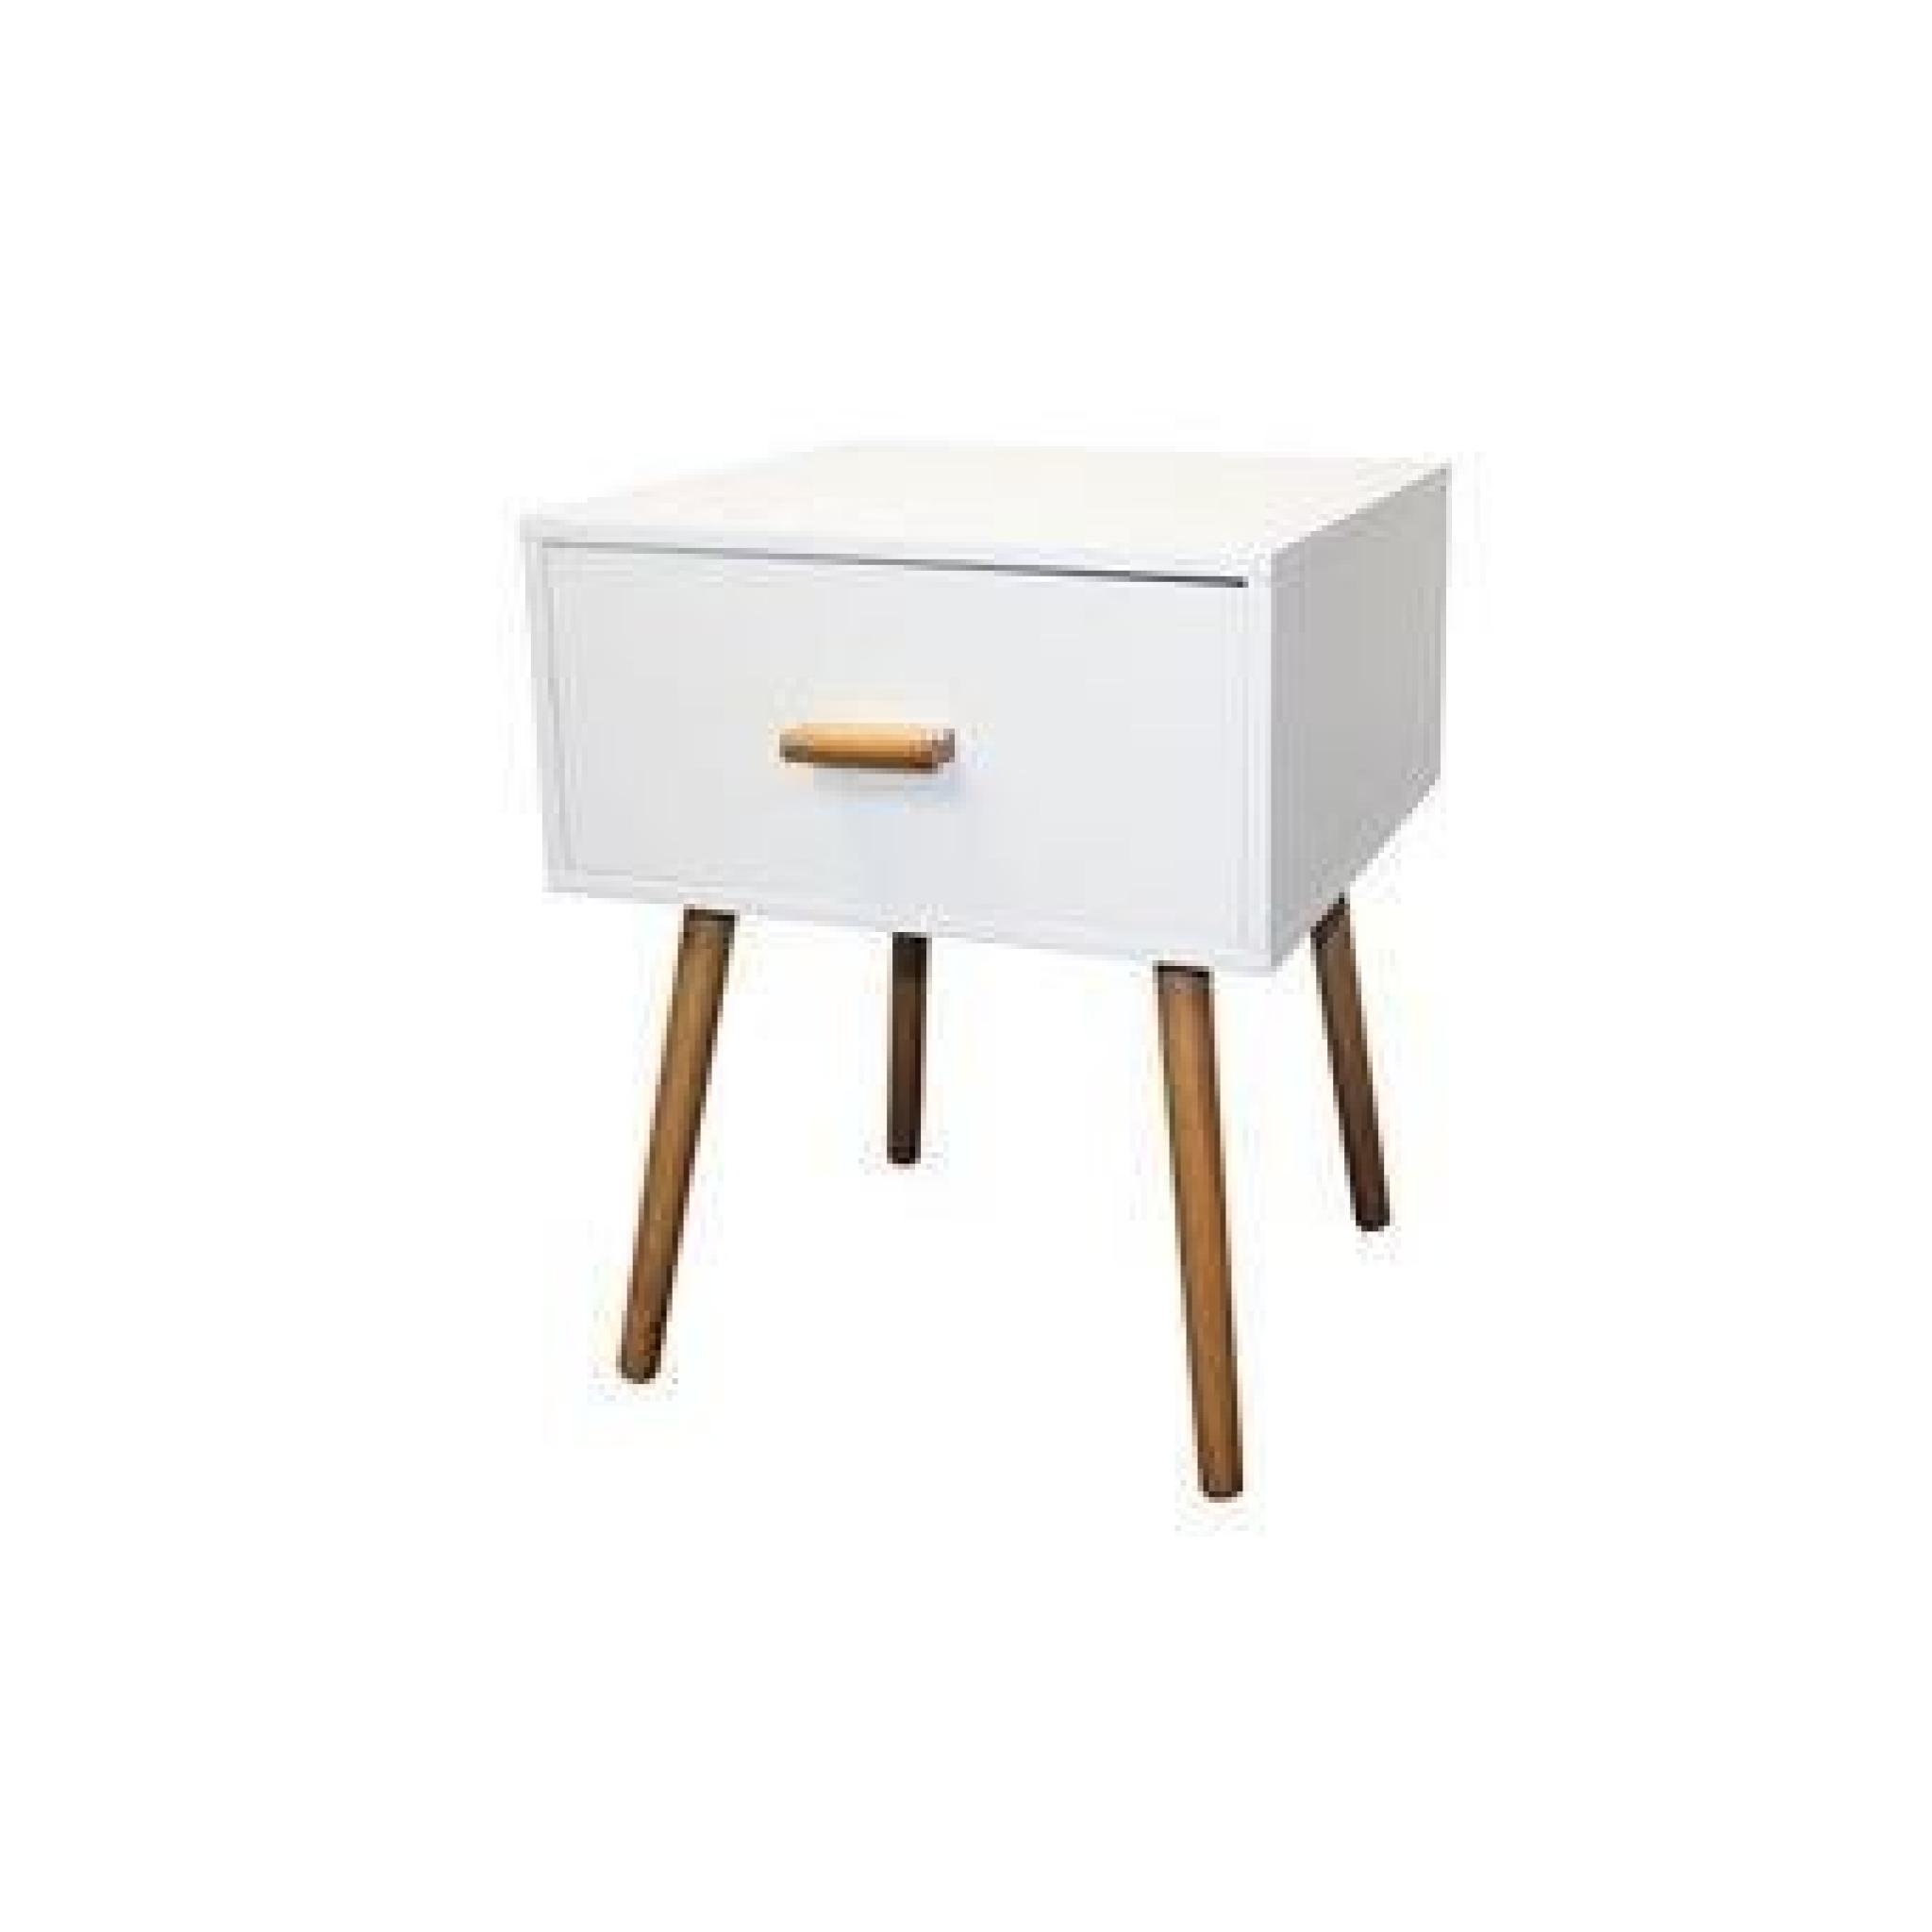 Table de chevet blanc design scandinave achat vente - Table de chevet enfant pas cher ...